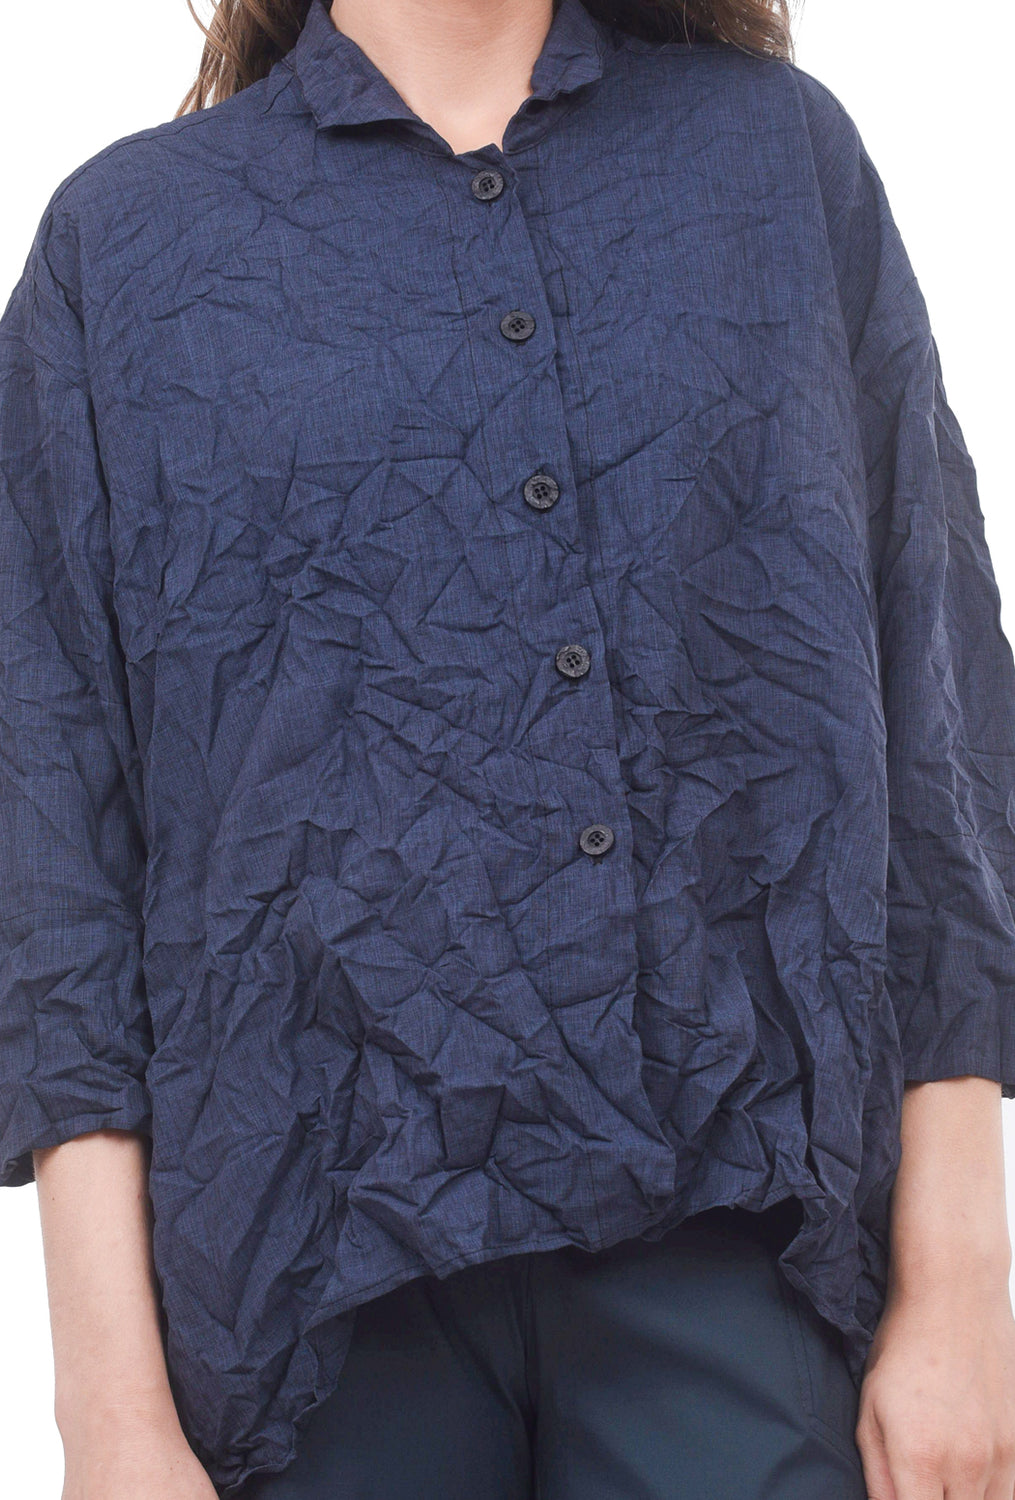 M Square Crinkle Woven Long Shirt, Slate Blue